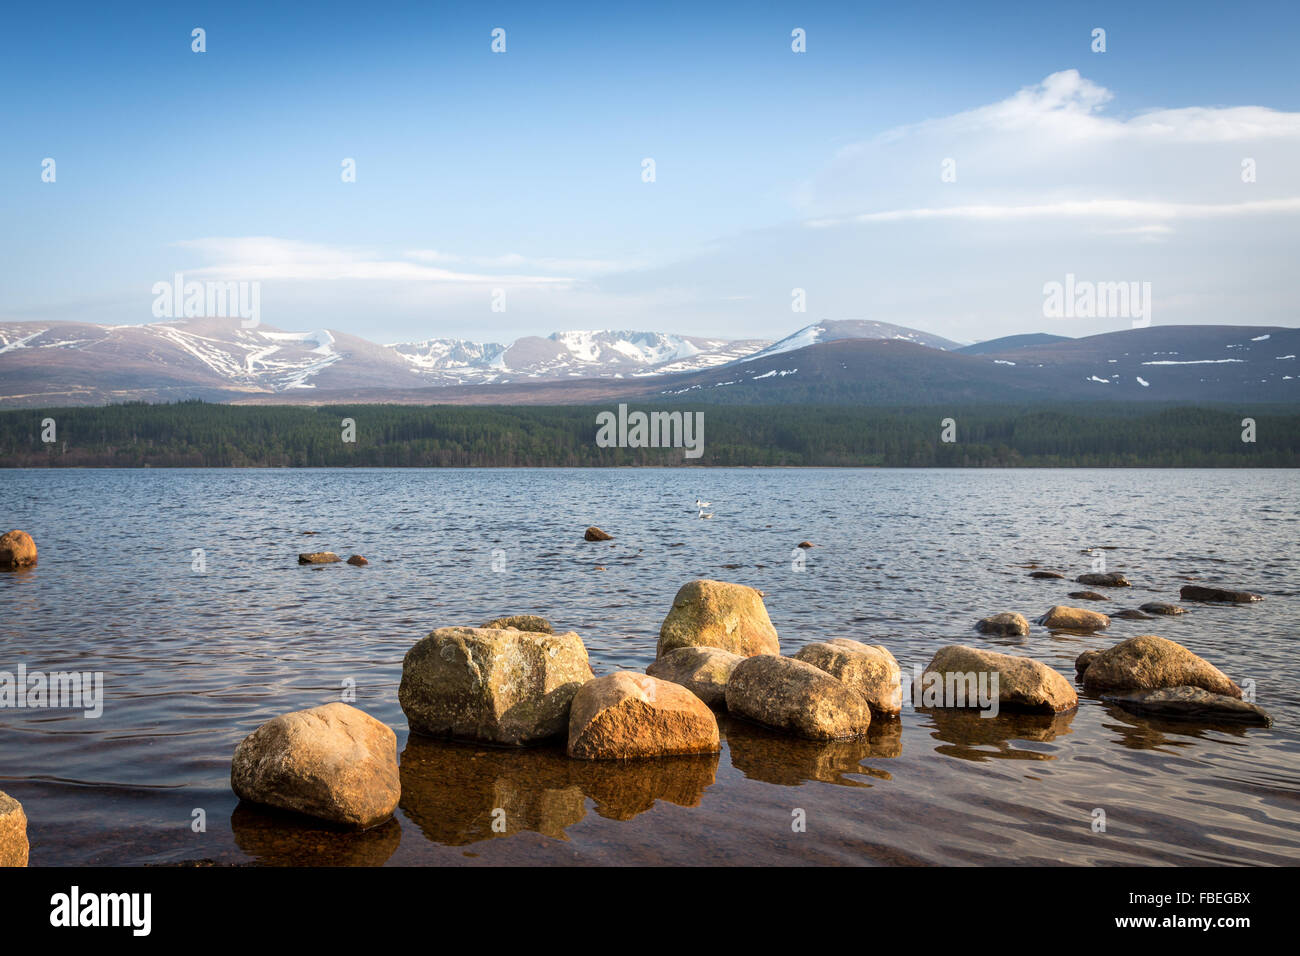 Loch Morlich, Aviemore, Badenoch and Strathspey, Scotland. Europe. Stock Photo